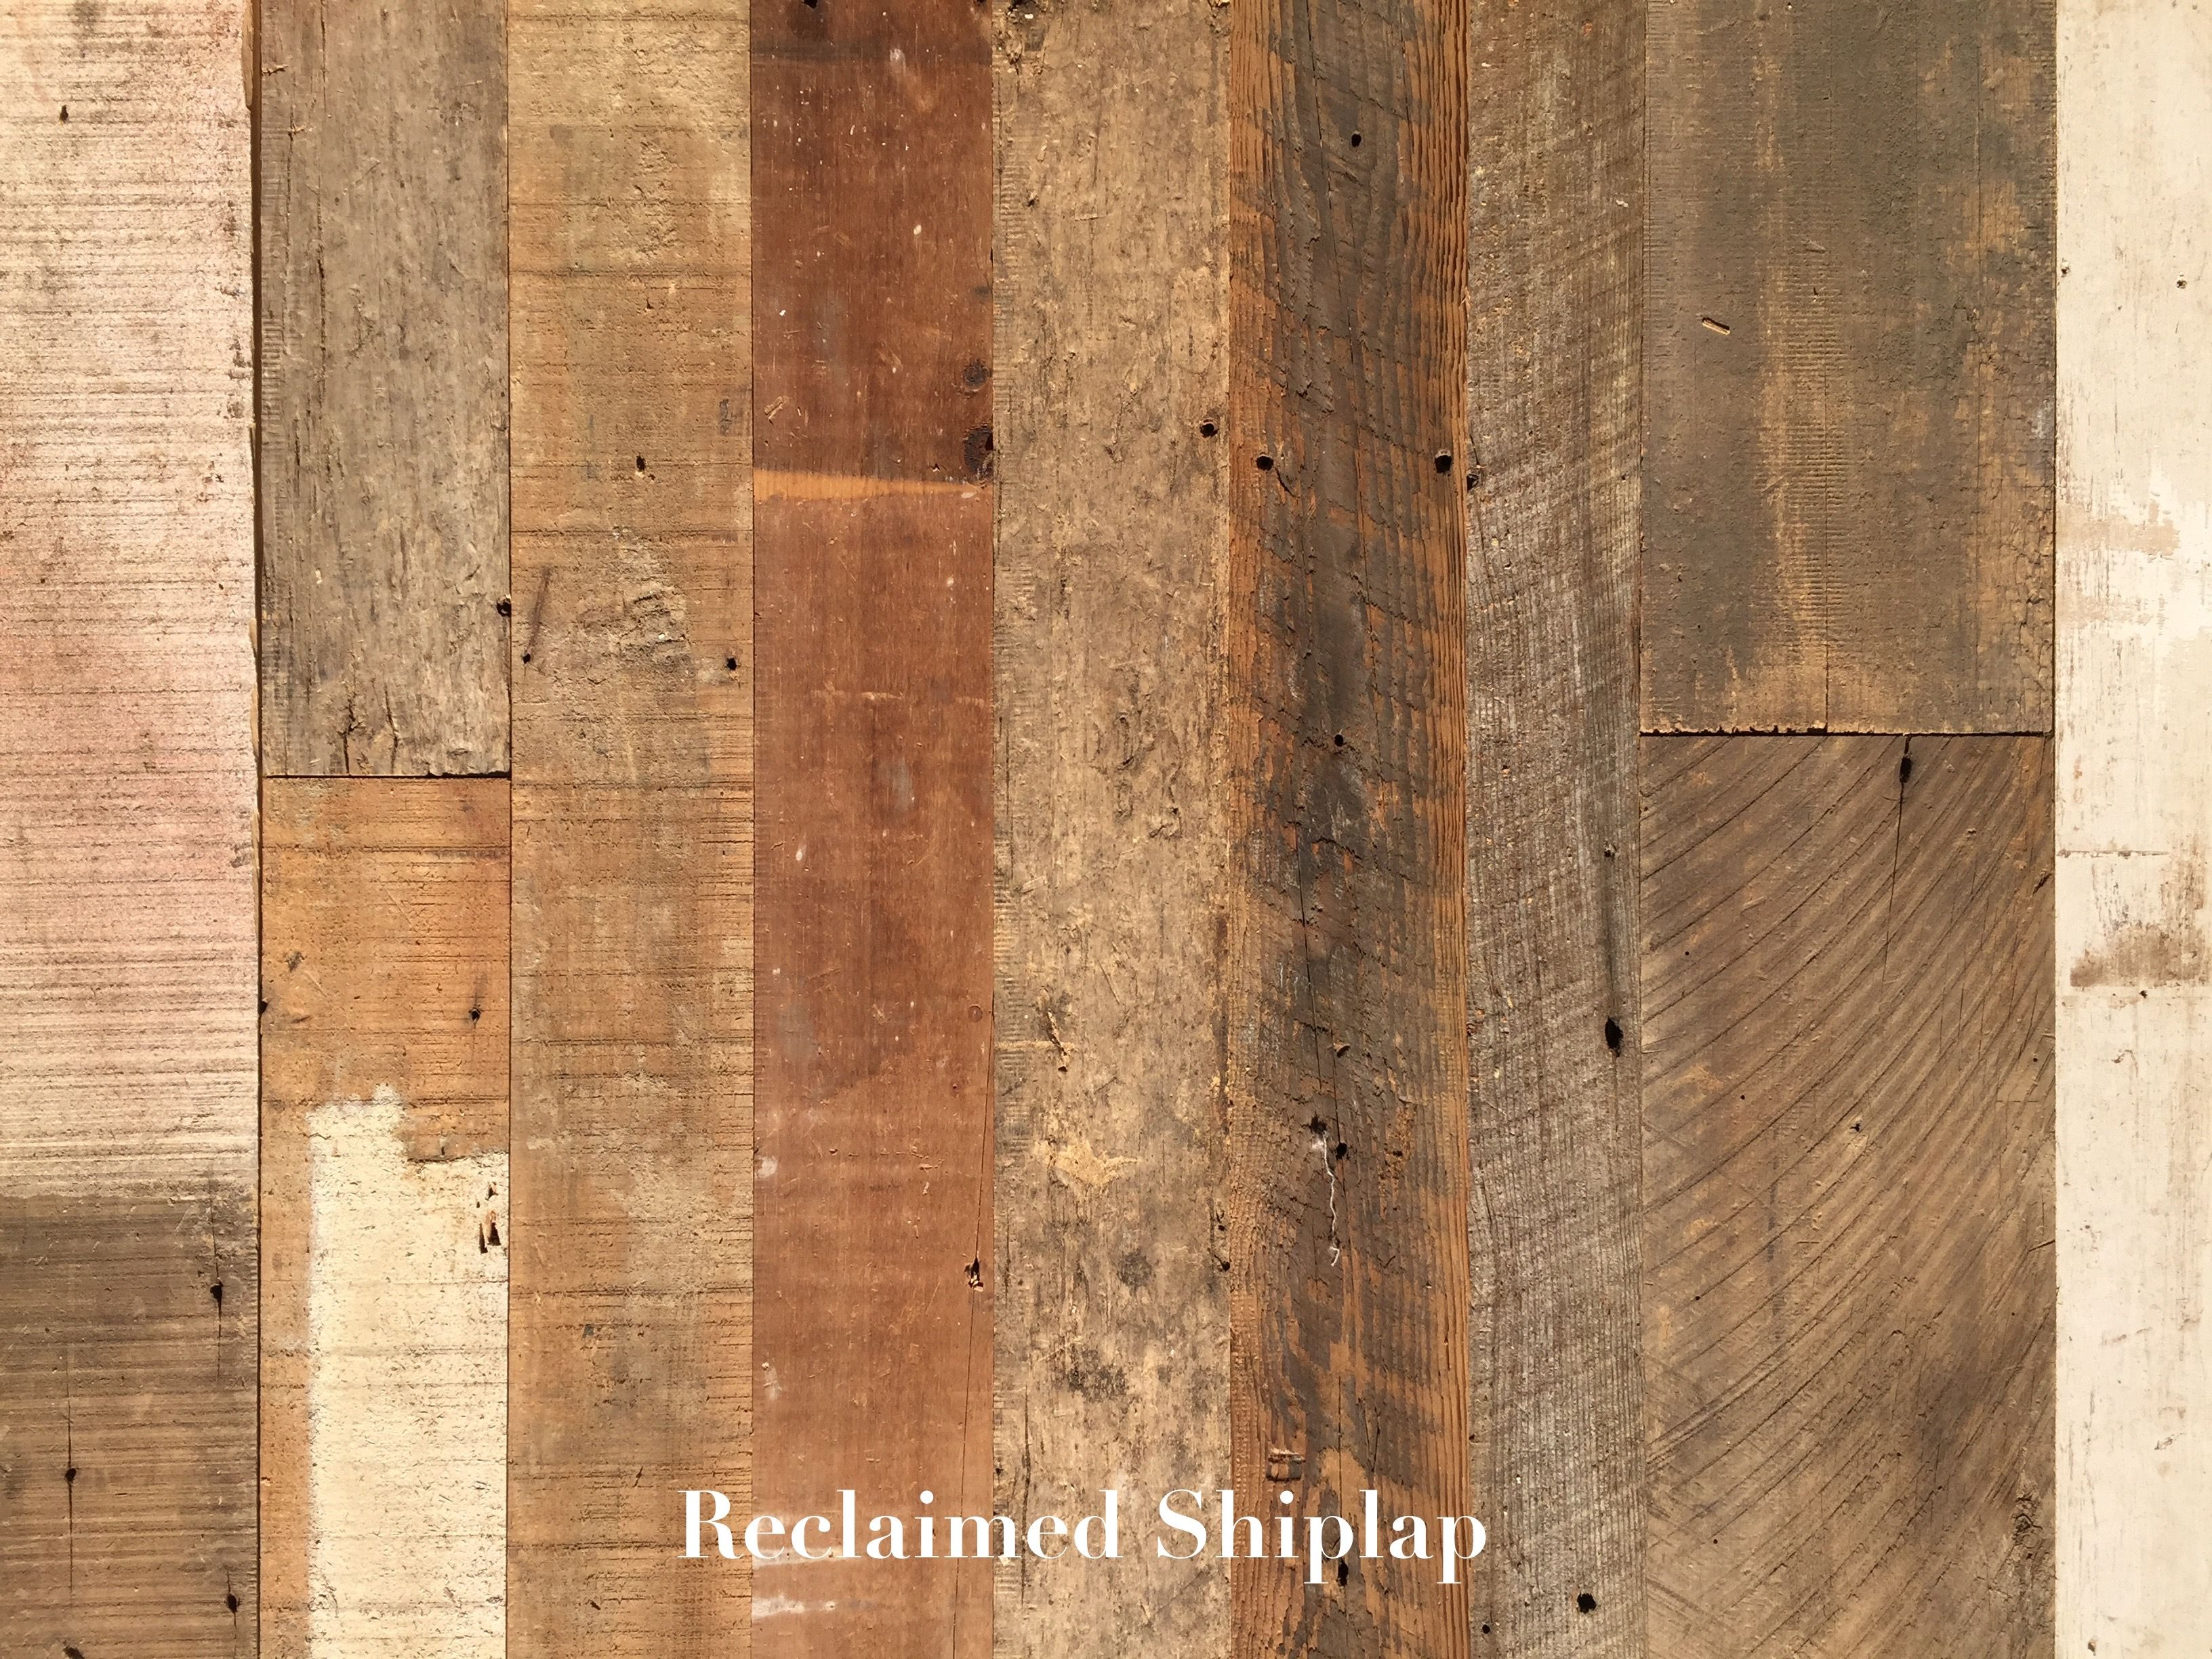 Reclaimed Shiplap Paneling / Cladding 7.99/sf Samples